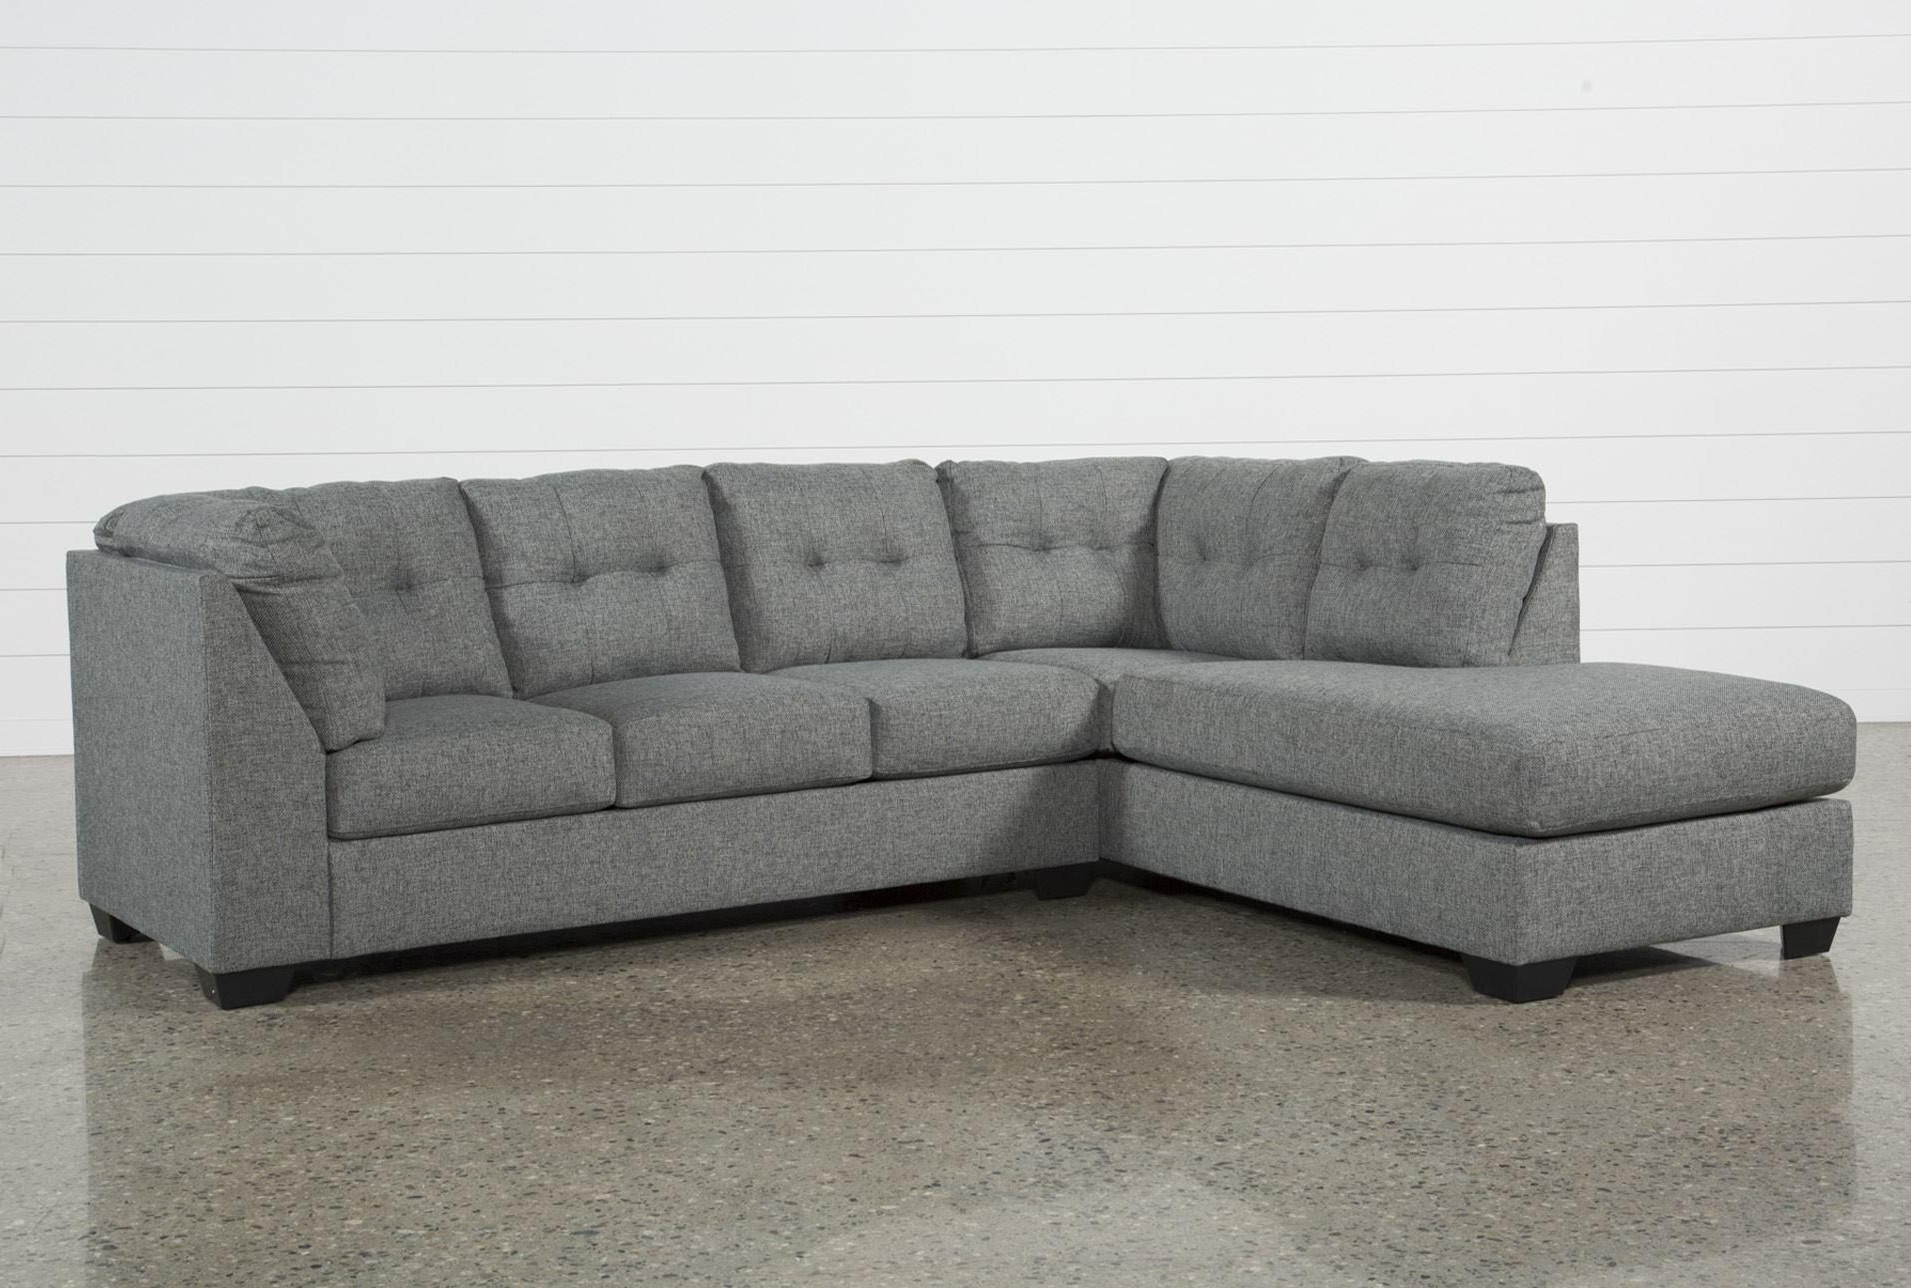 Arrowmask 2 Piece Sectional W/sleeper & Left Facing Chaise Pertaining To Favorite Lucy Dark Grey 2 Piece Sleeper Sectionals With Laf Chaise (View 11 of 20)